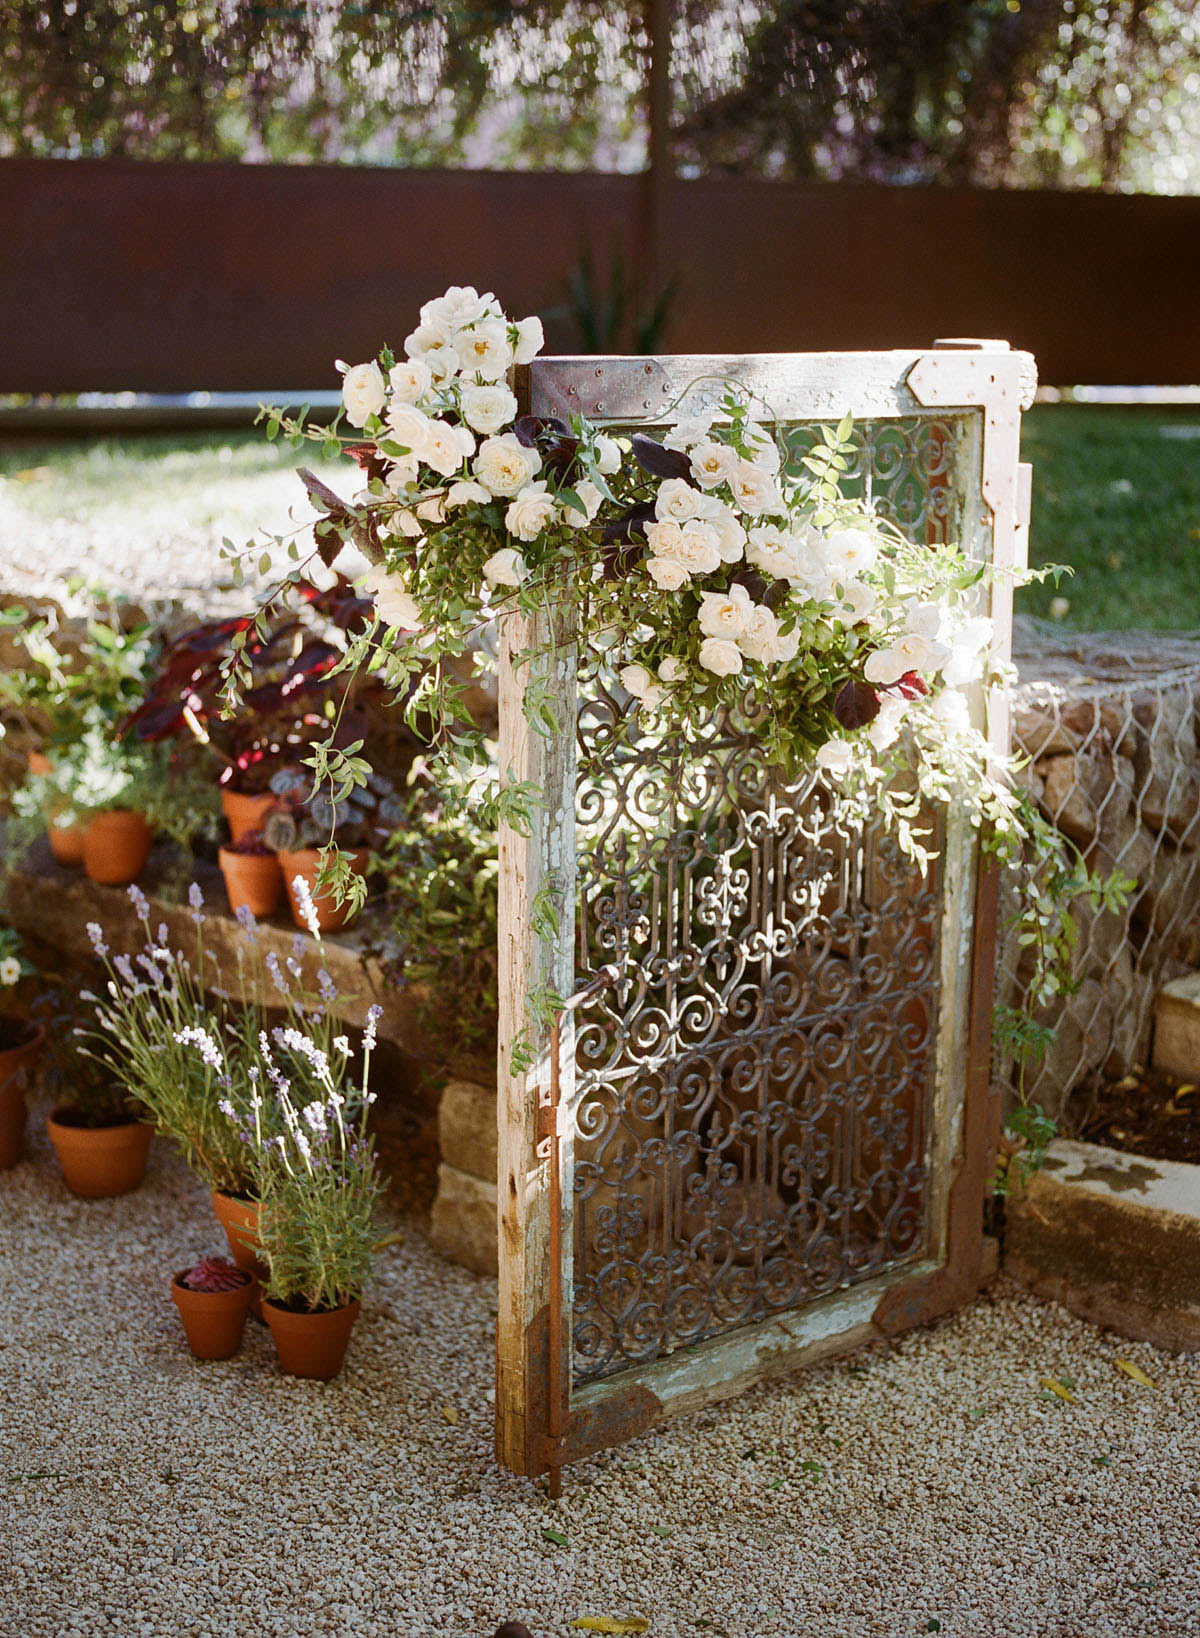 15-flowers-gate-wedding.jpg